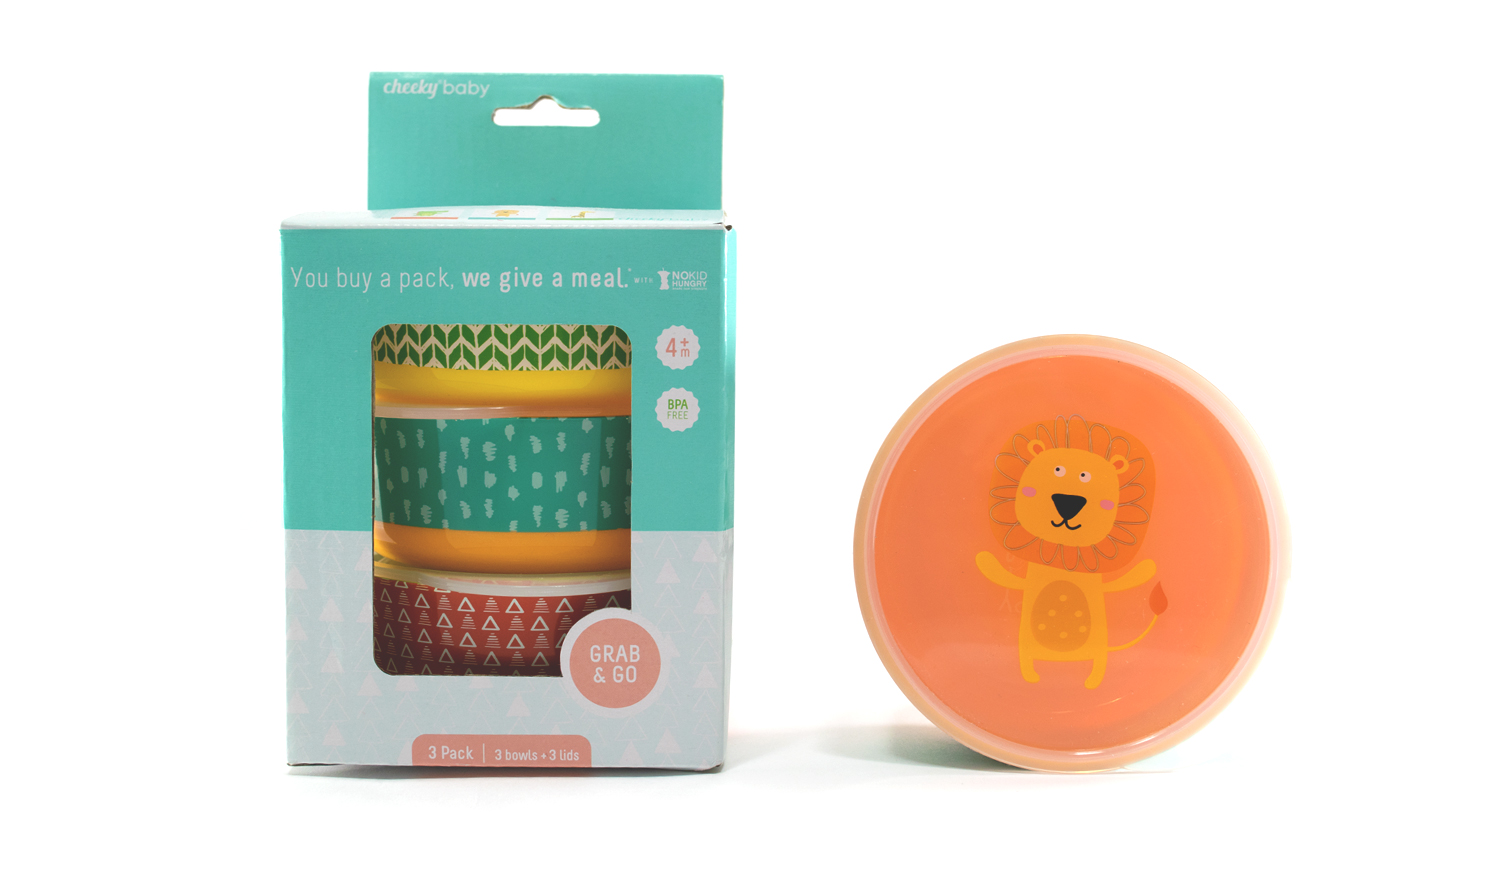 Cheeky Baby: Packaging | Product